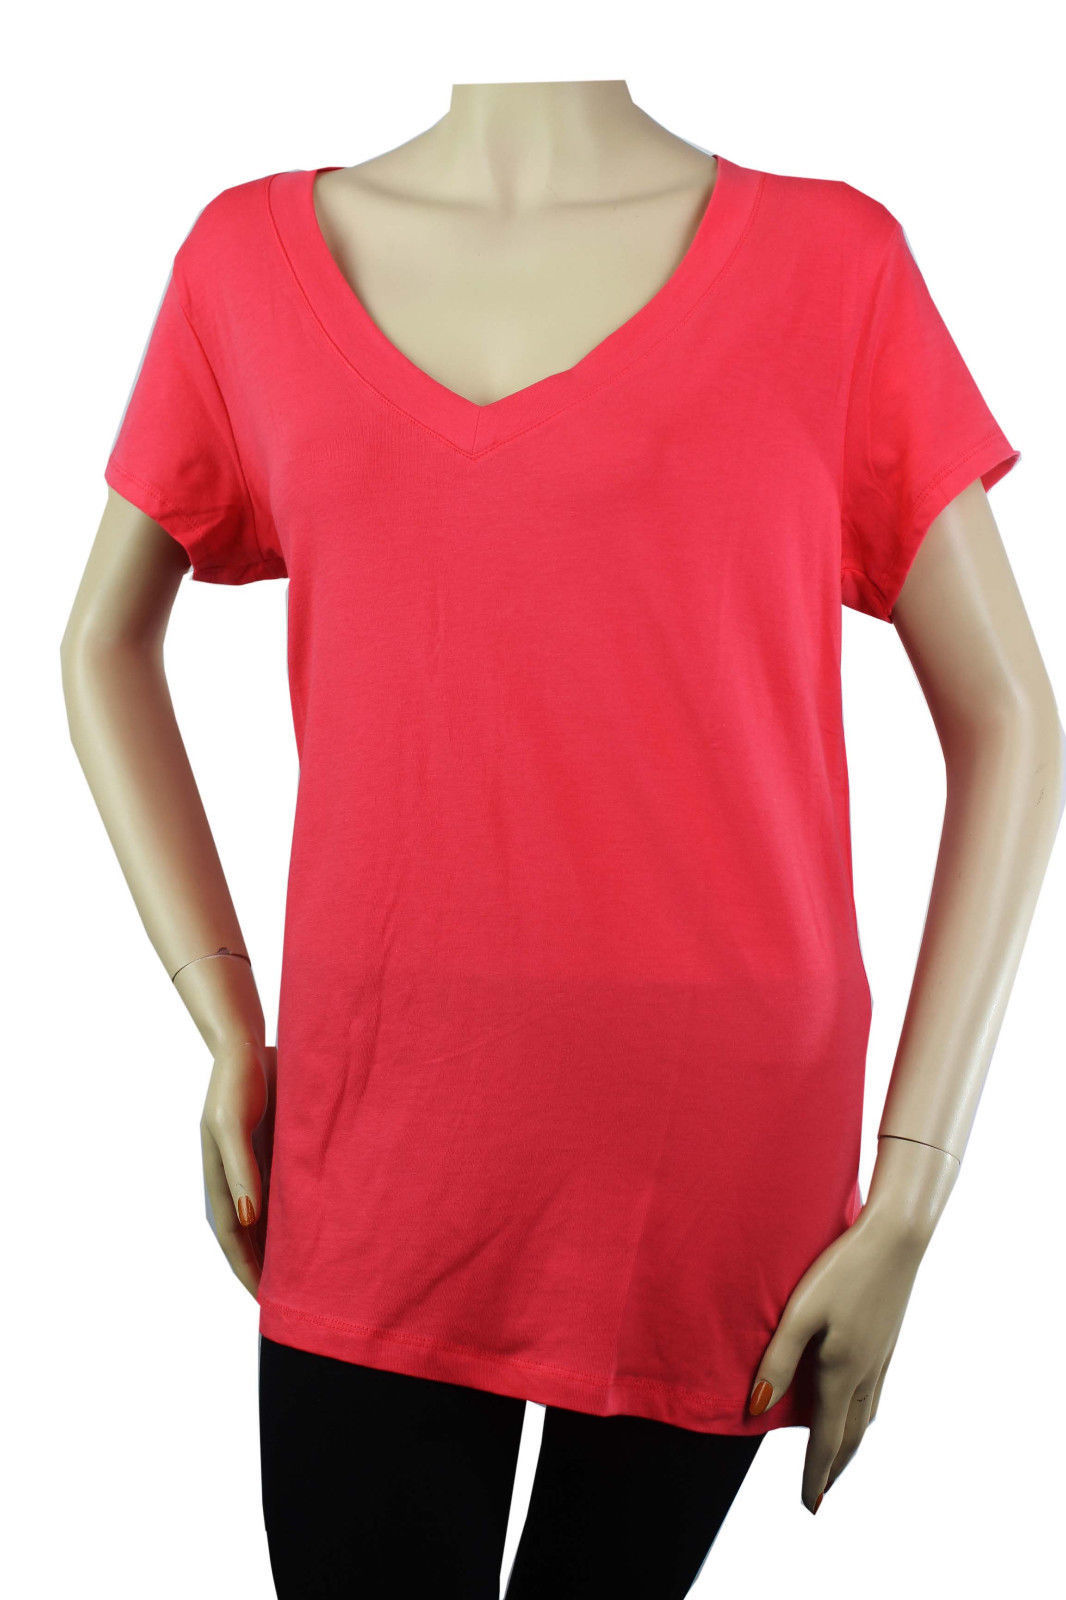 Sexy V- NECK Short Sleeve Basic T-SHIRTS Stretchy COTTON Casual Comfy Top PLUS